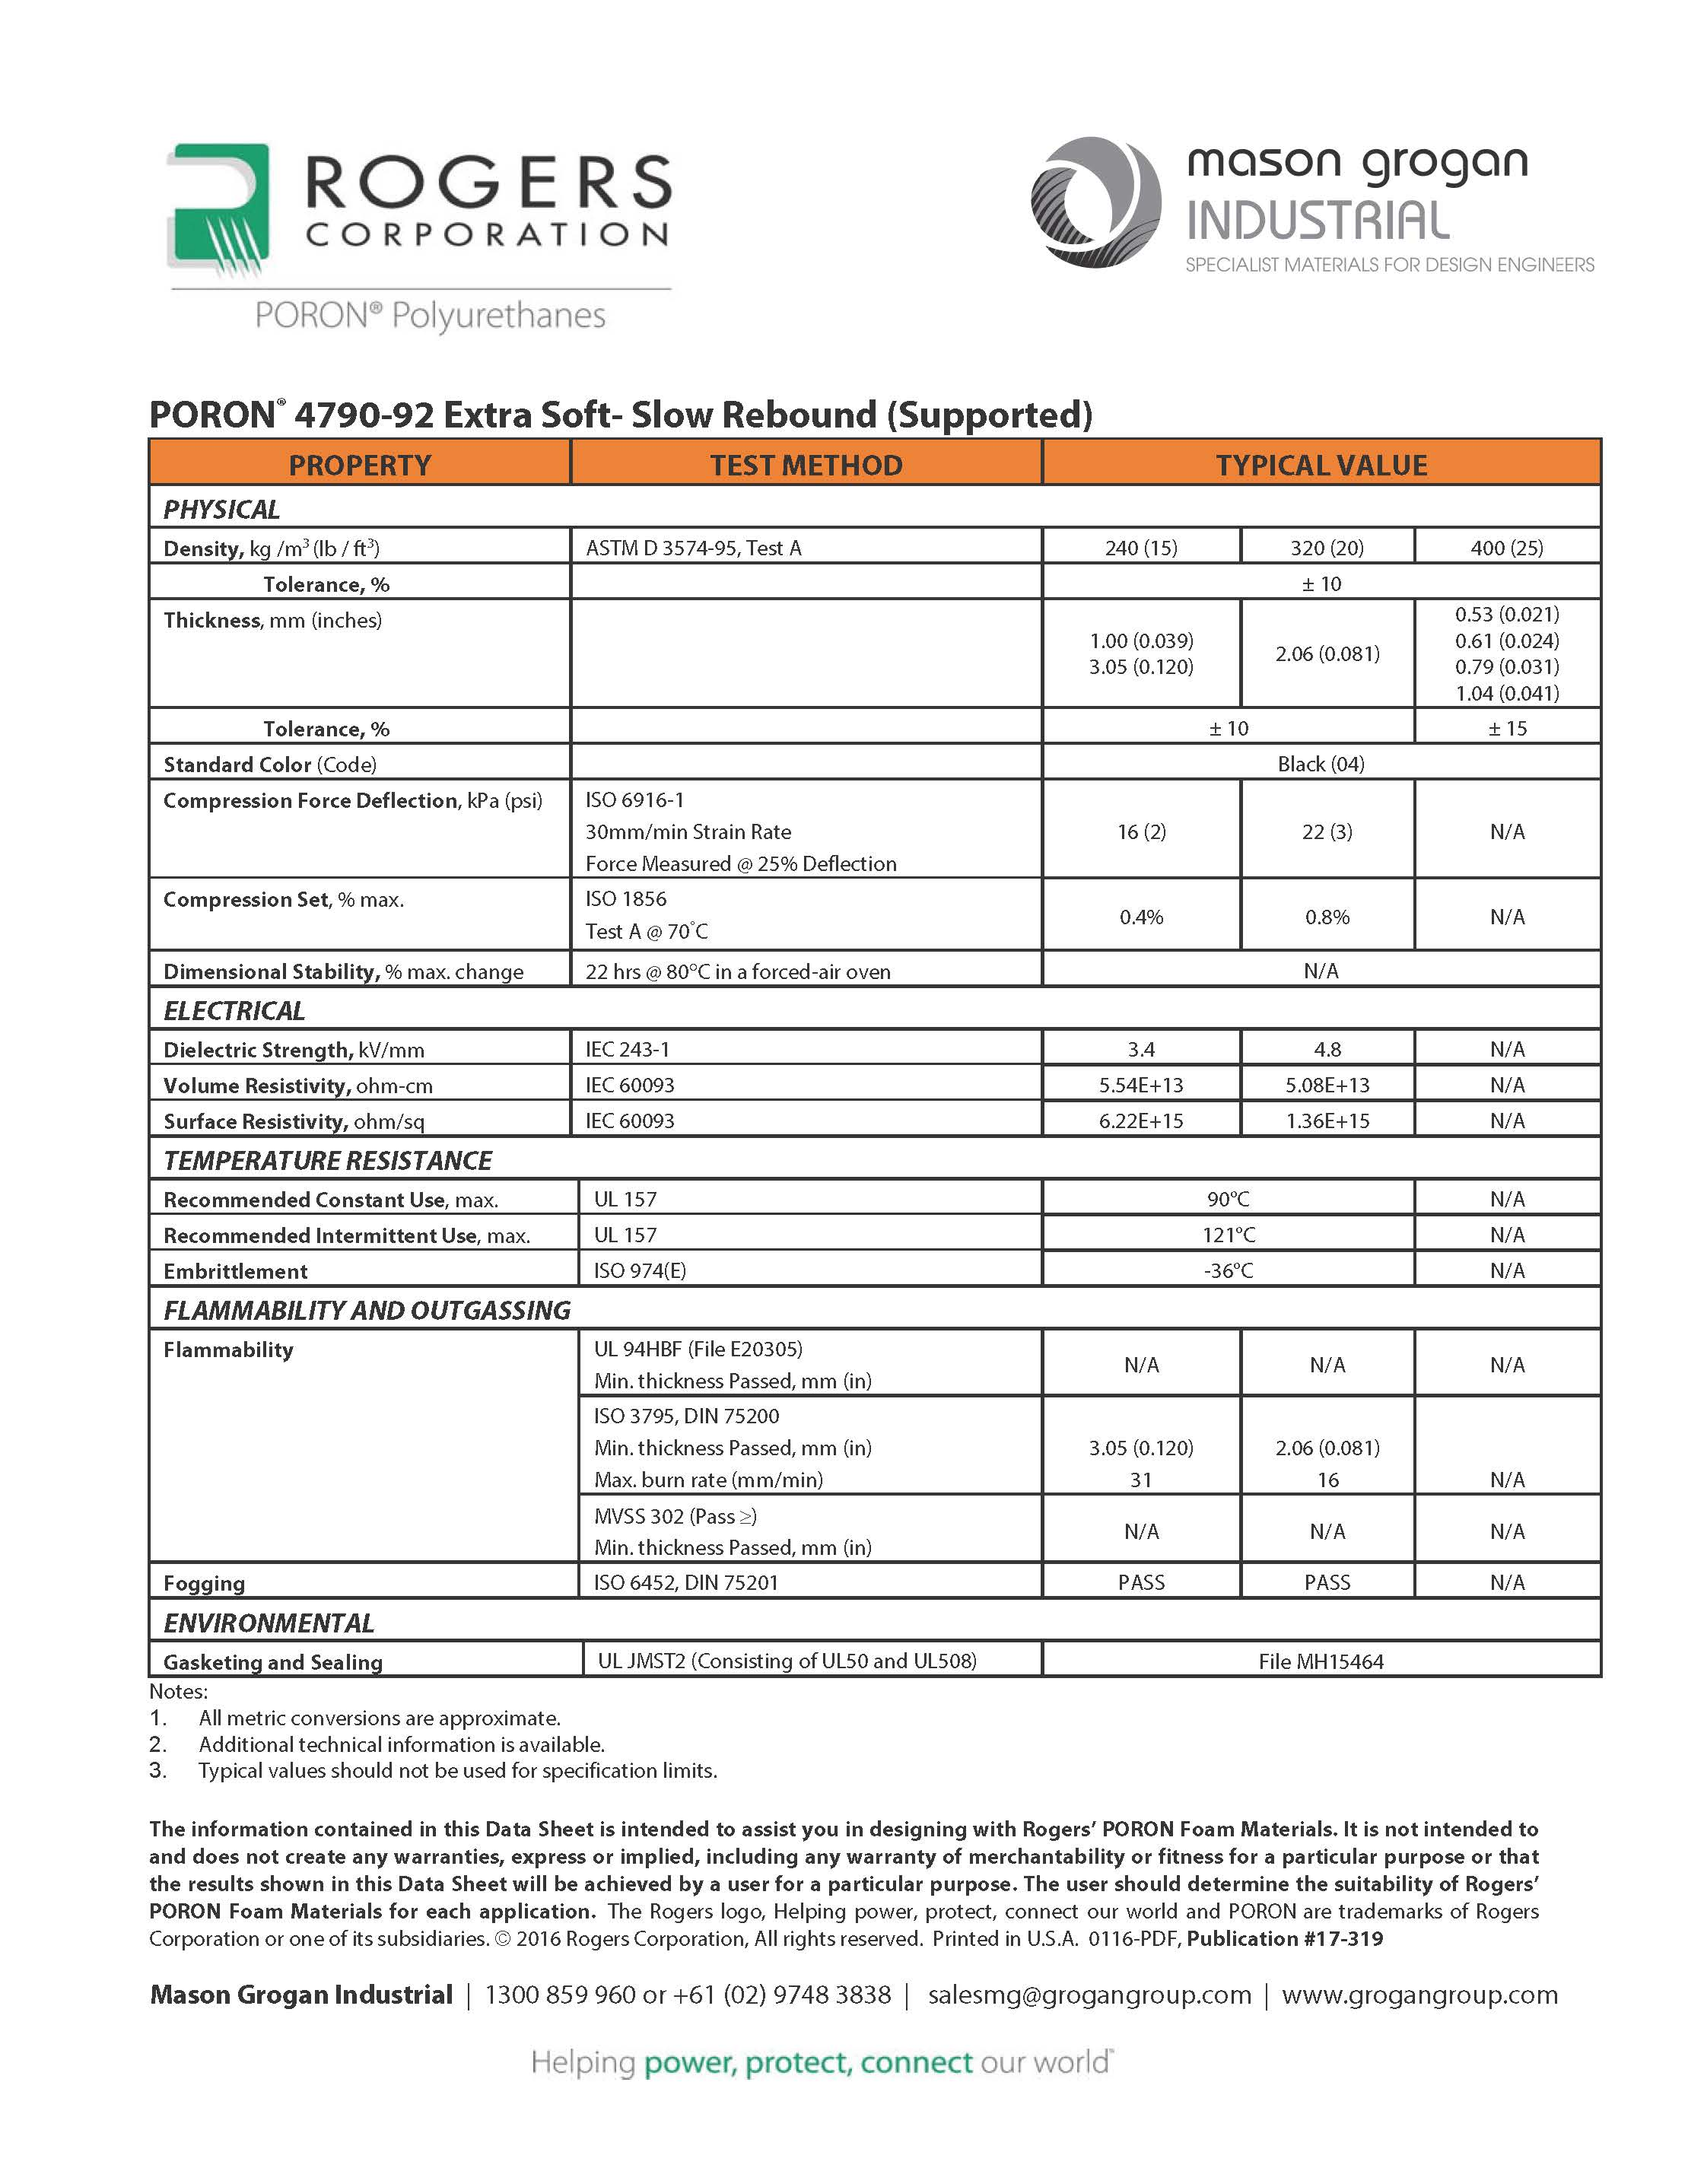 PORON® 4790-92 Extra-Soft Slow-Rebound Supported Global Standards Data Sheet